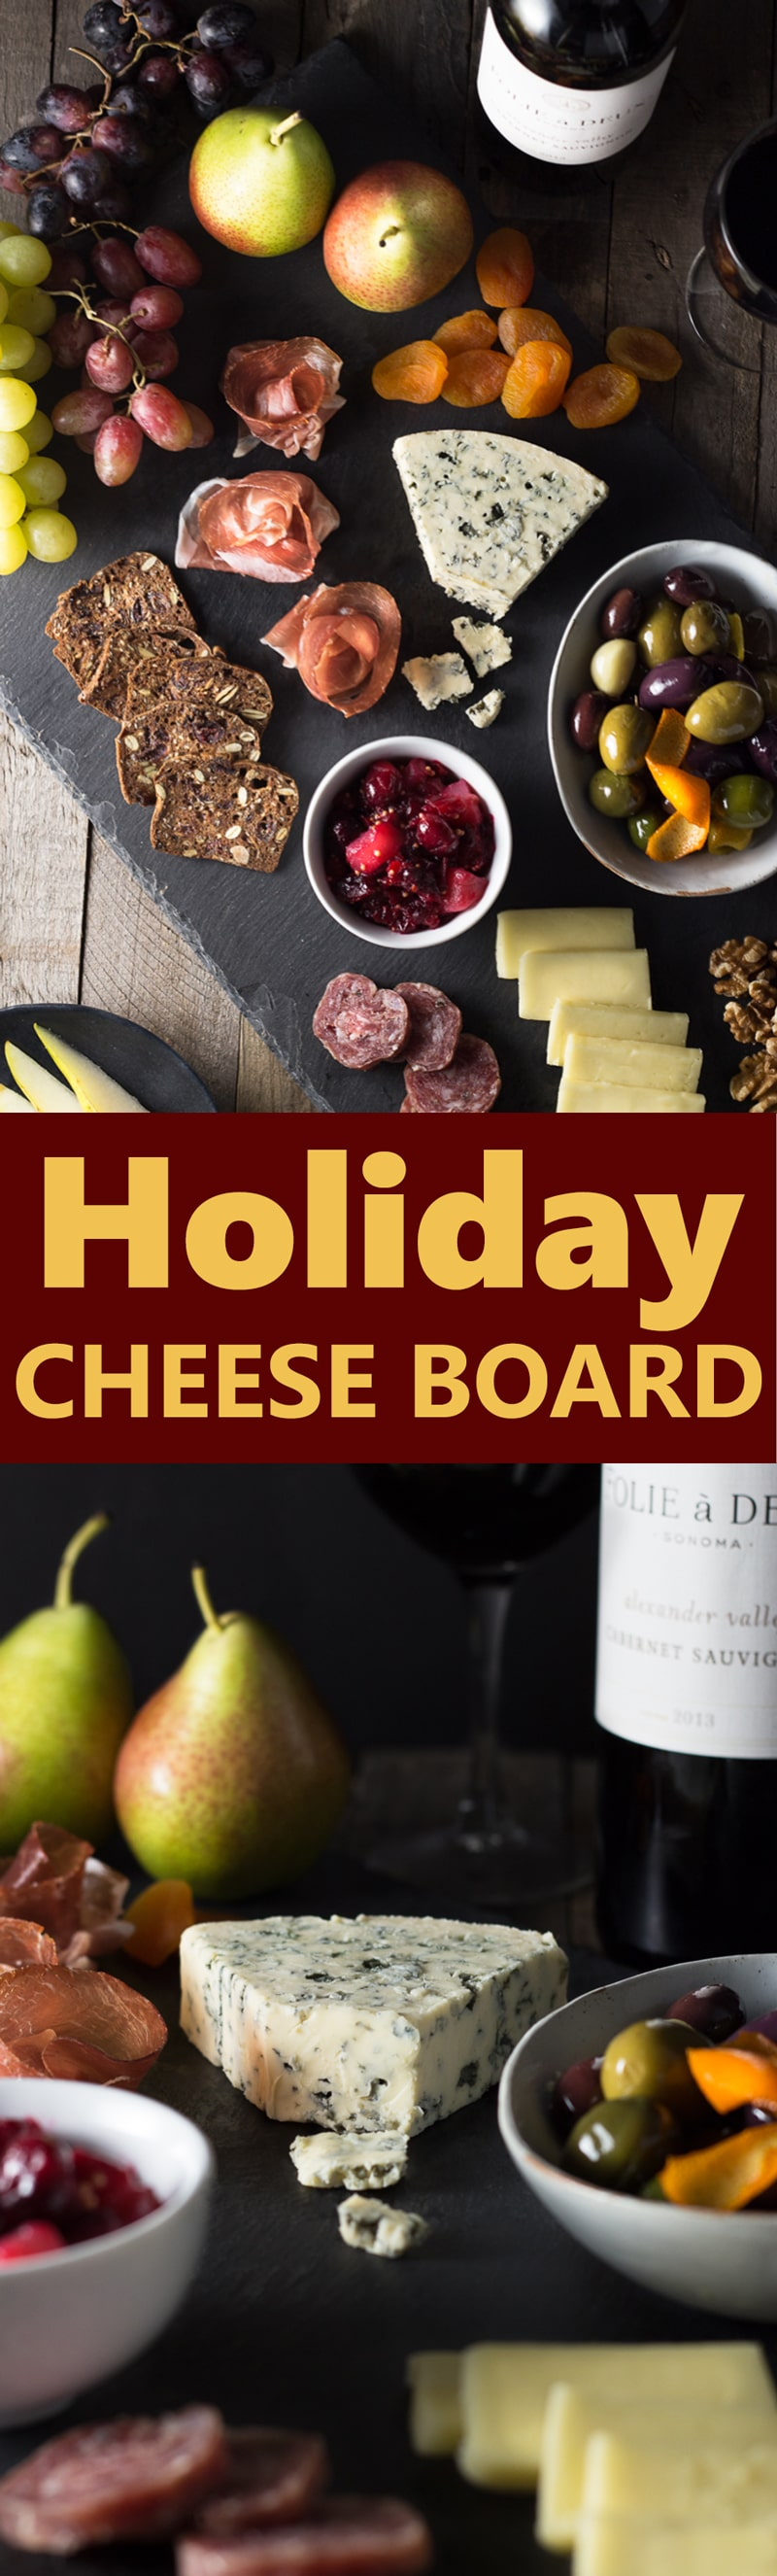 Holiday Cheese Board with Cranberry Mostarda & Marinated Olives